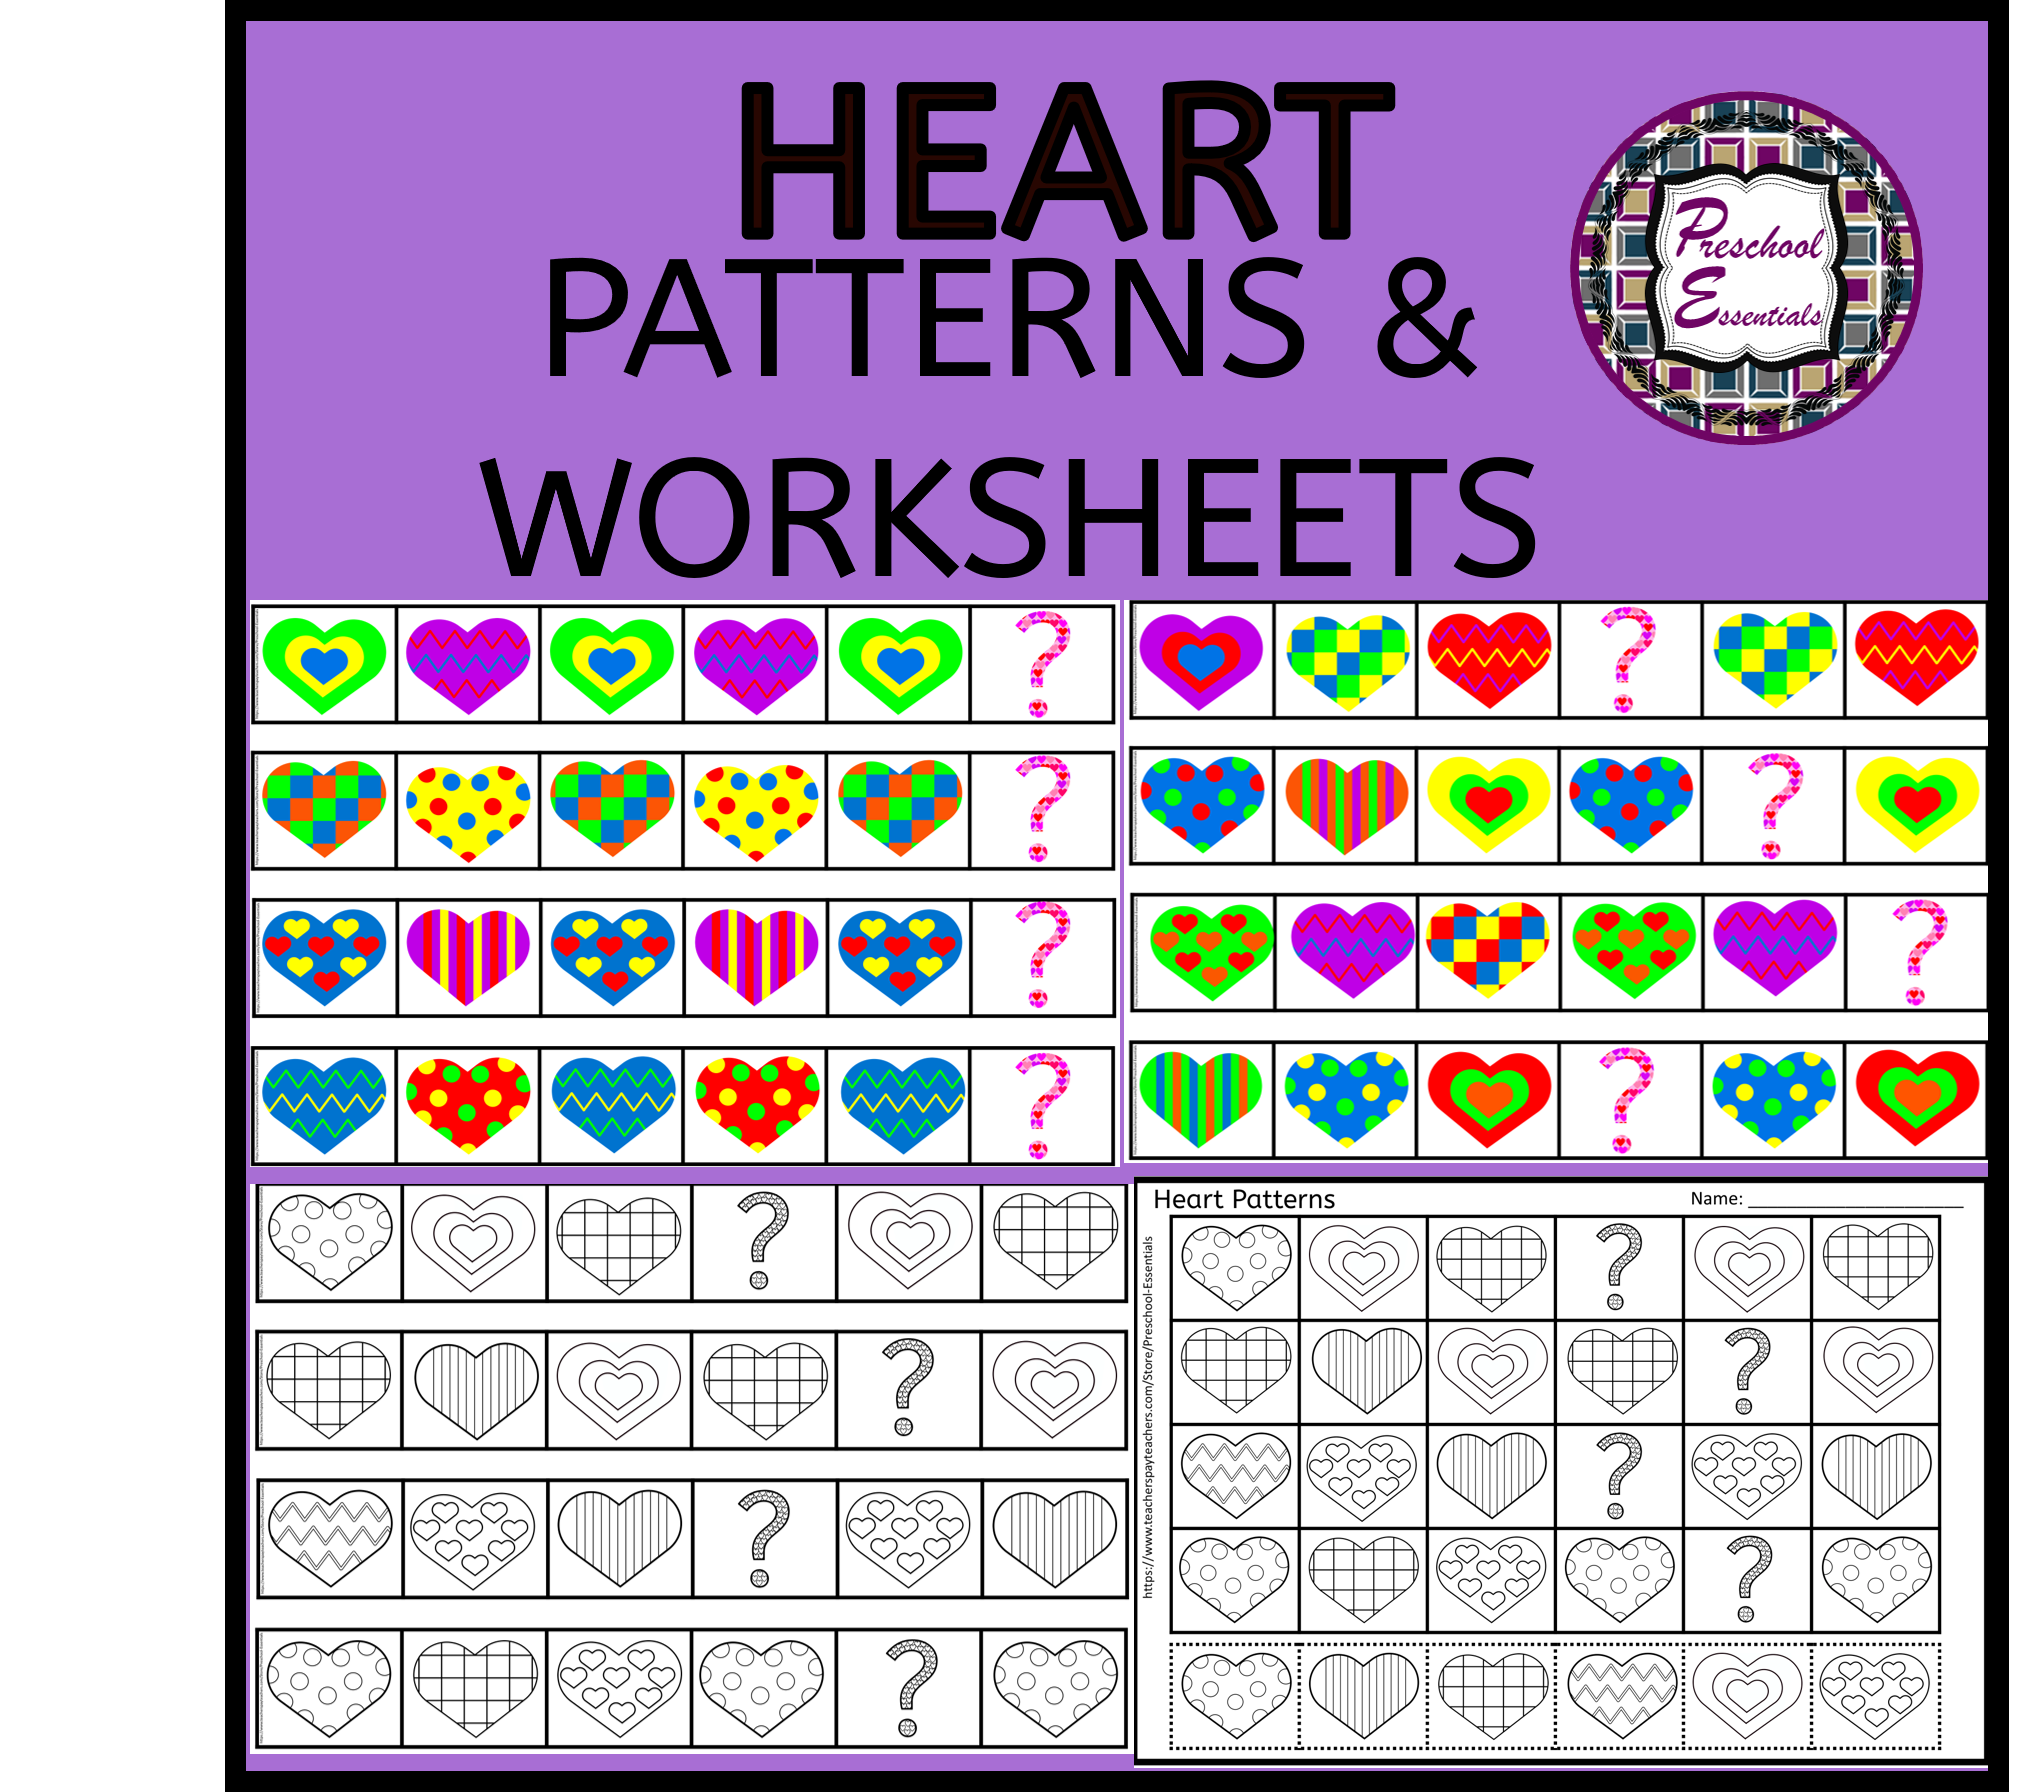 Heart Pattern Cards And Worksheets Pattern Worksheet Heart Patterns Card Patterns [ 1792 x 2021 Pixel ]